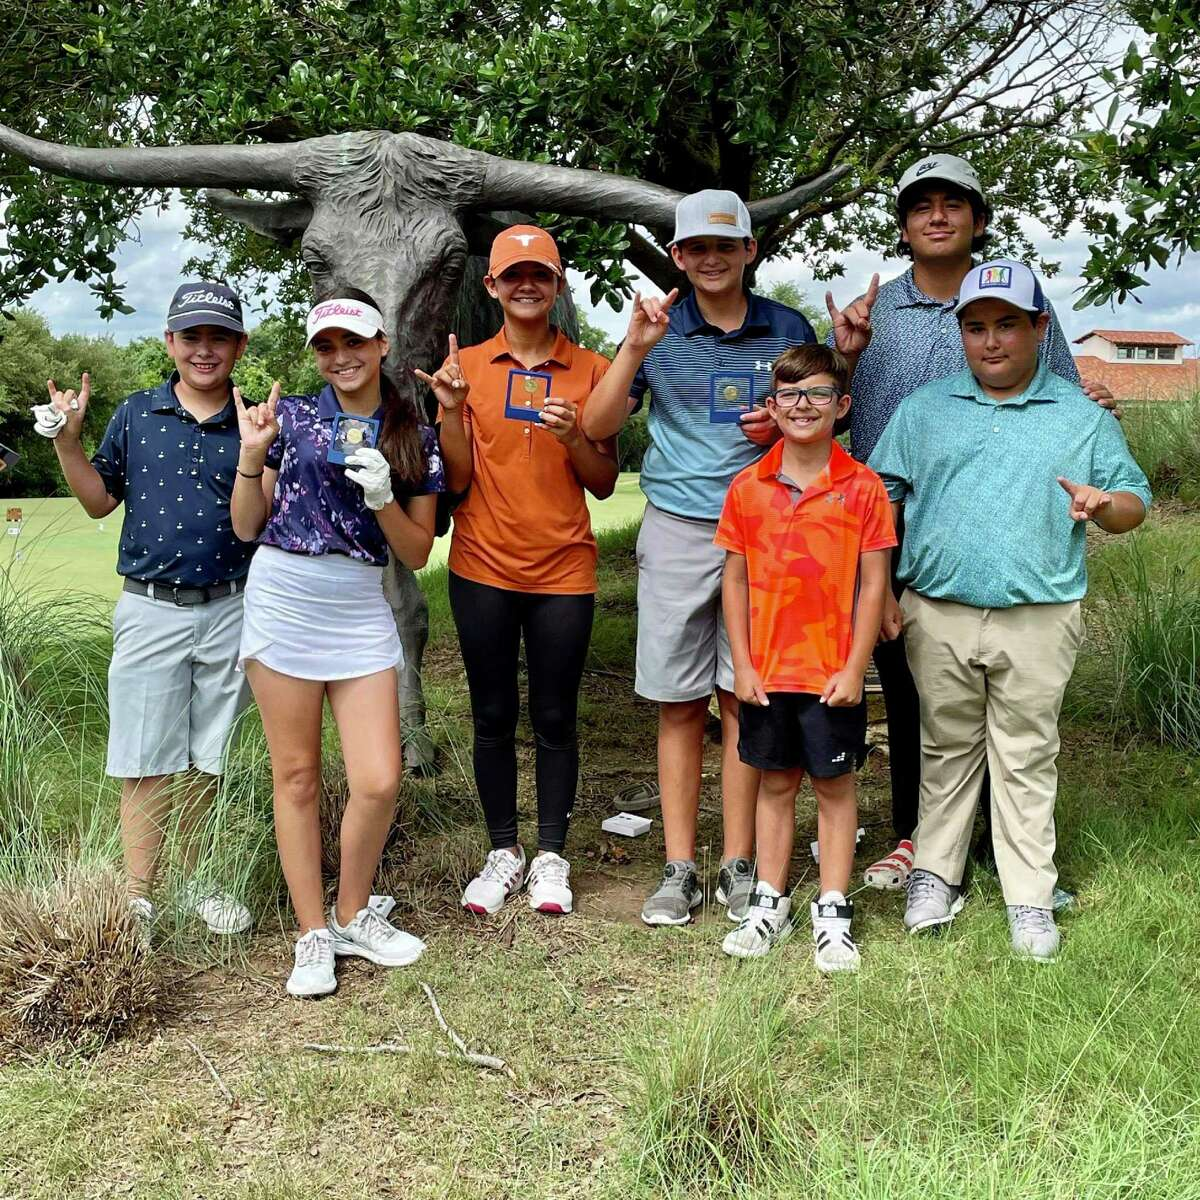 Eight local youth golfers participated at the sub-regional Drive, Chip and Putt at the University of Texas Golf Course on June 29.